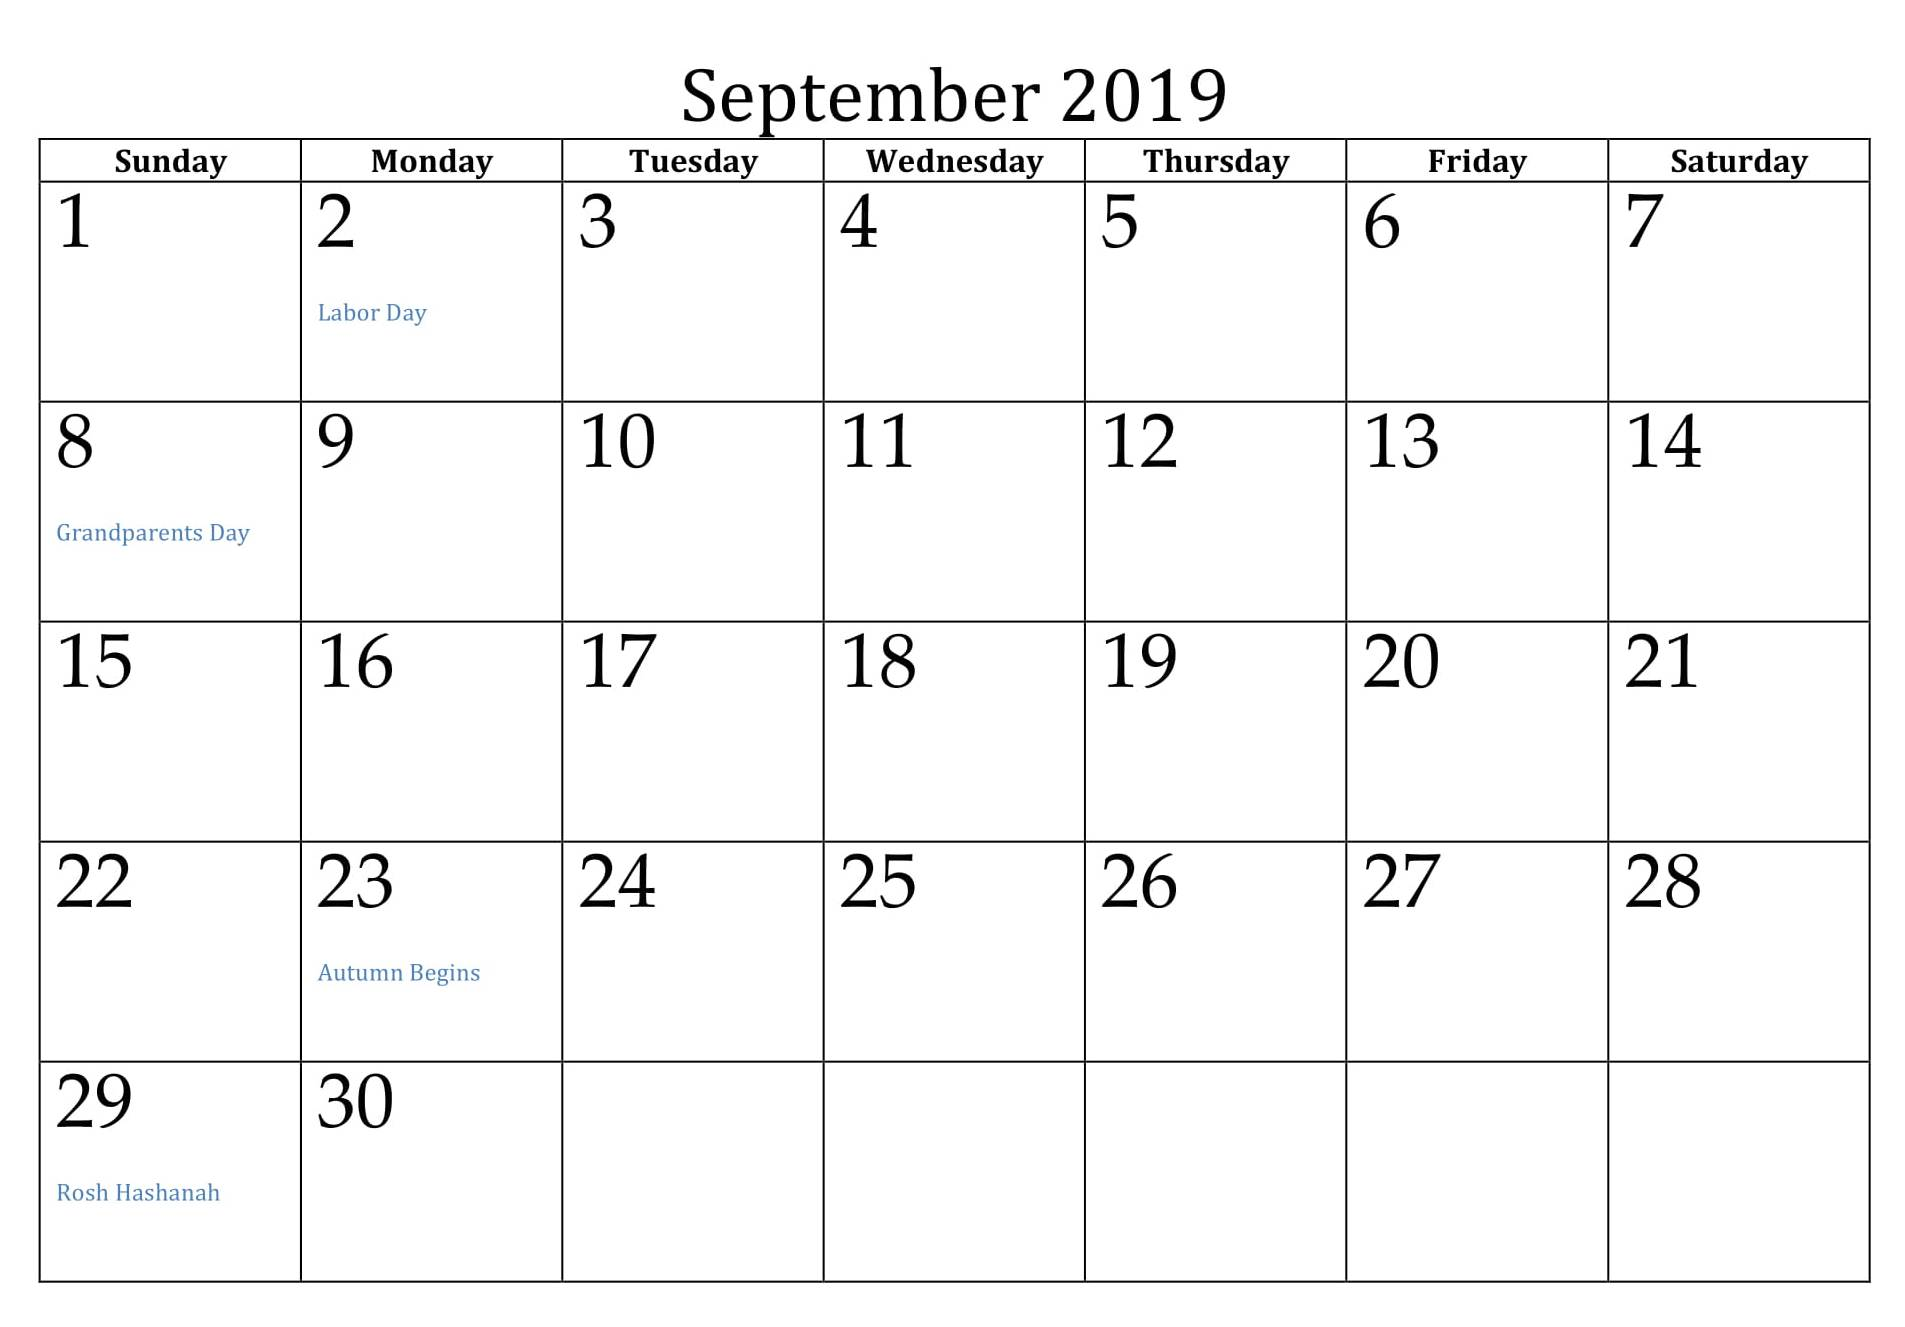 September 2019 Calendar with Holidays USA